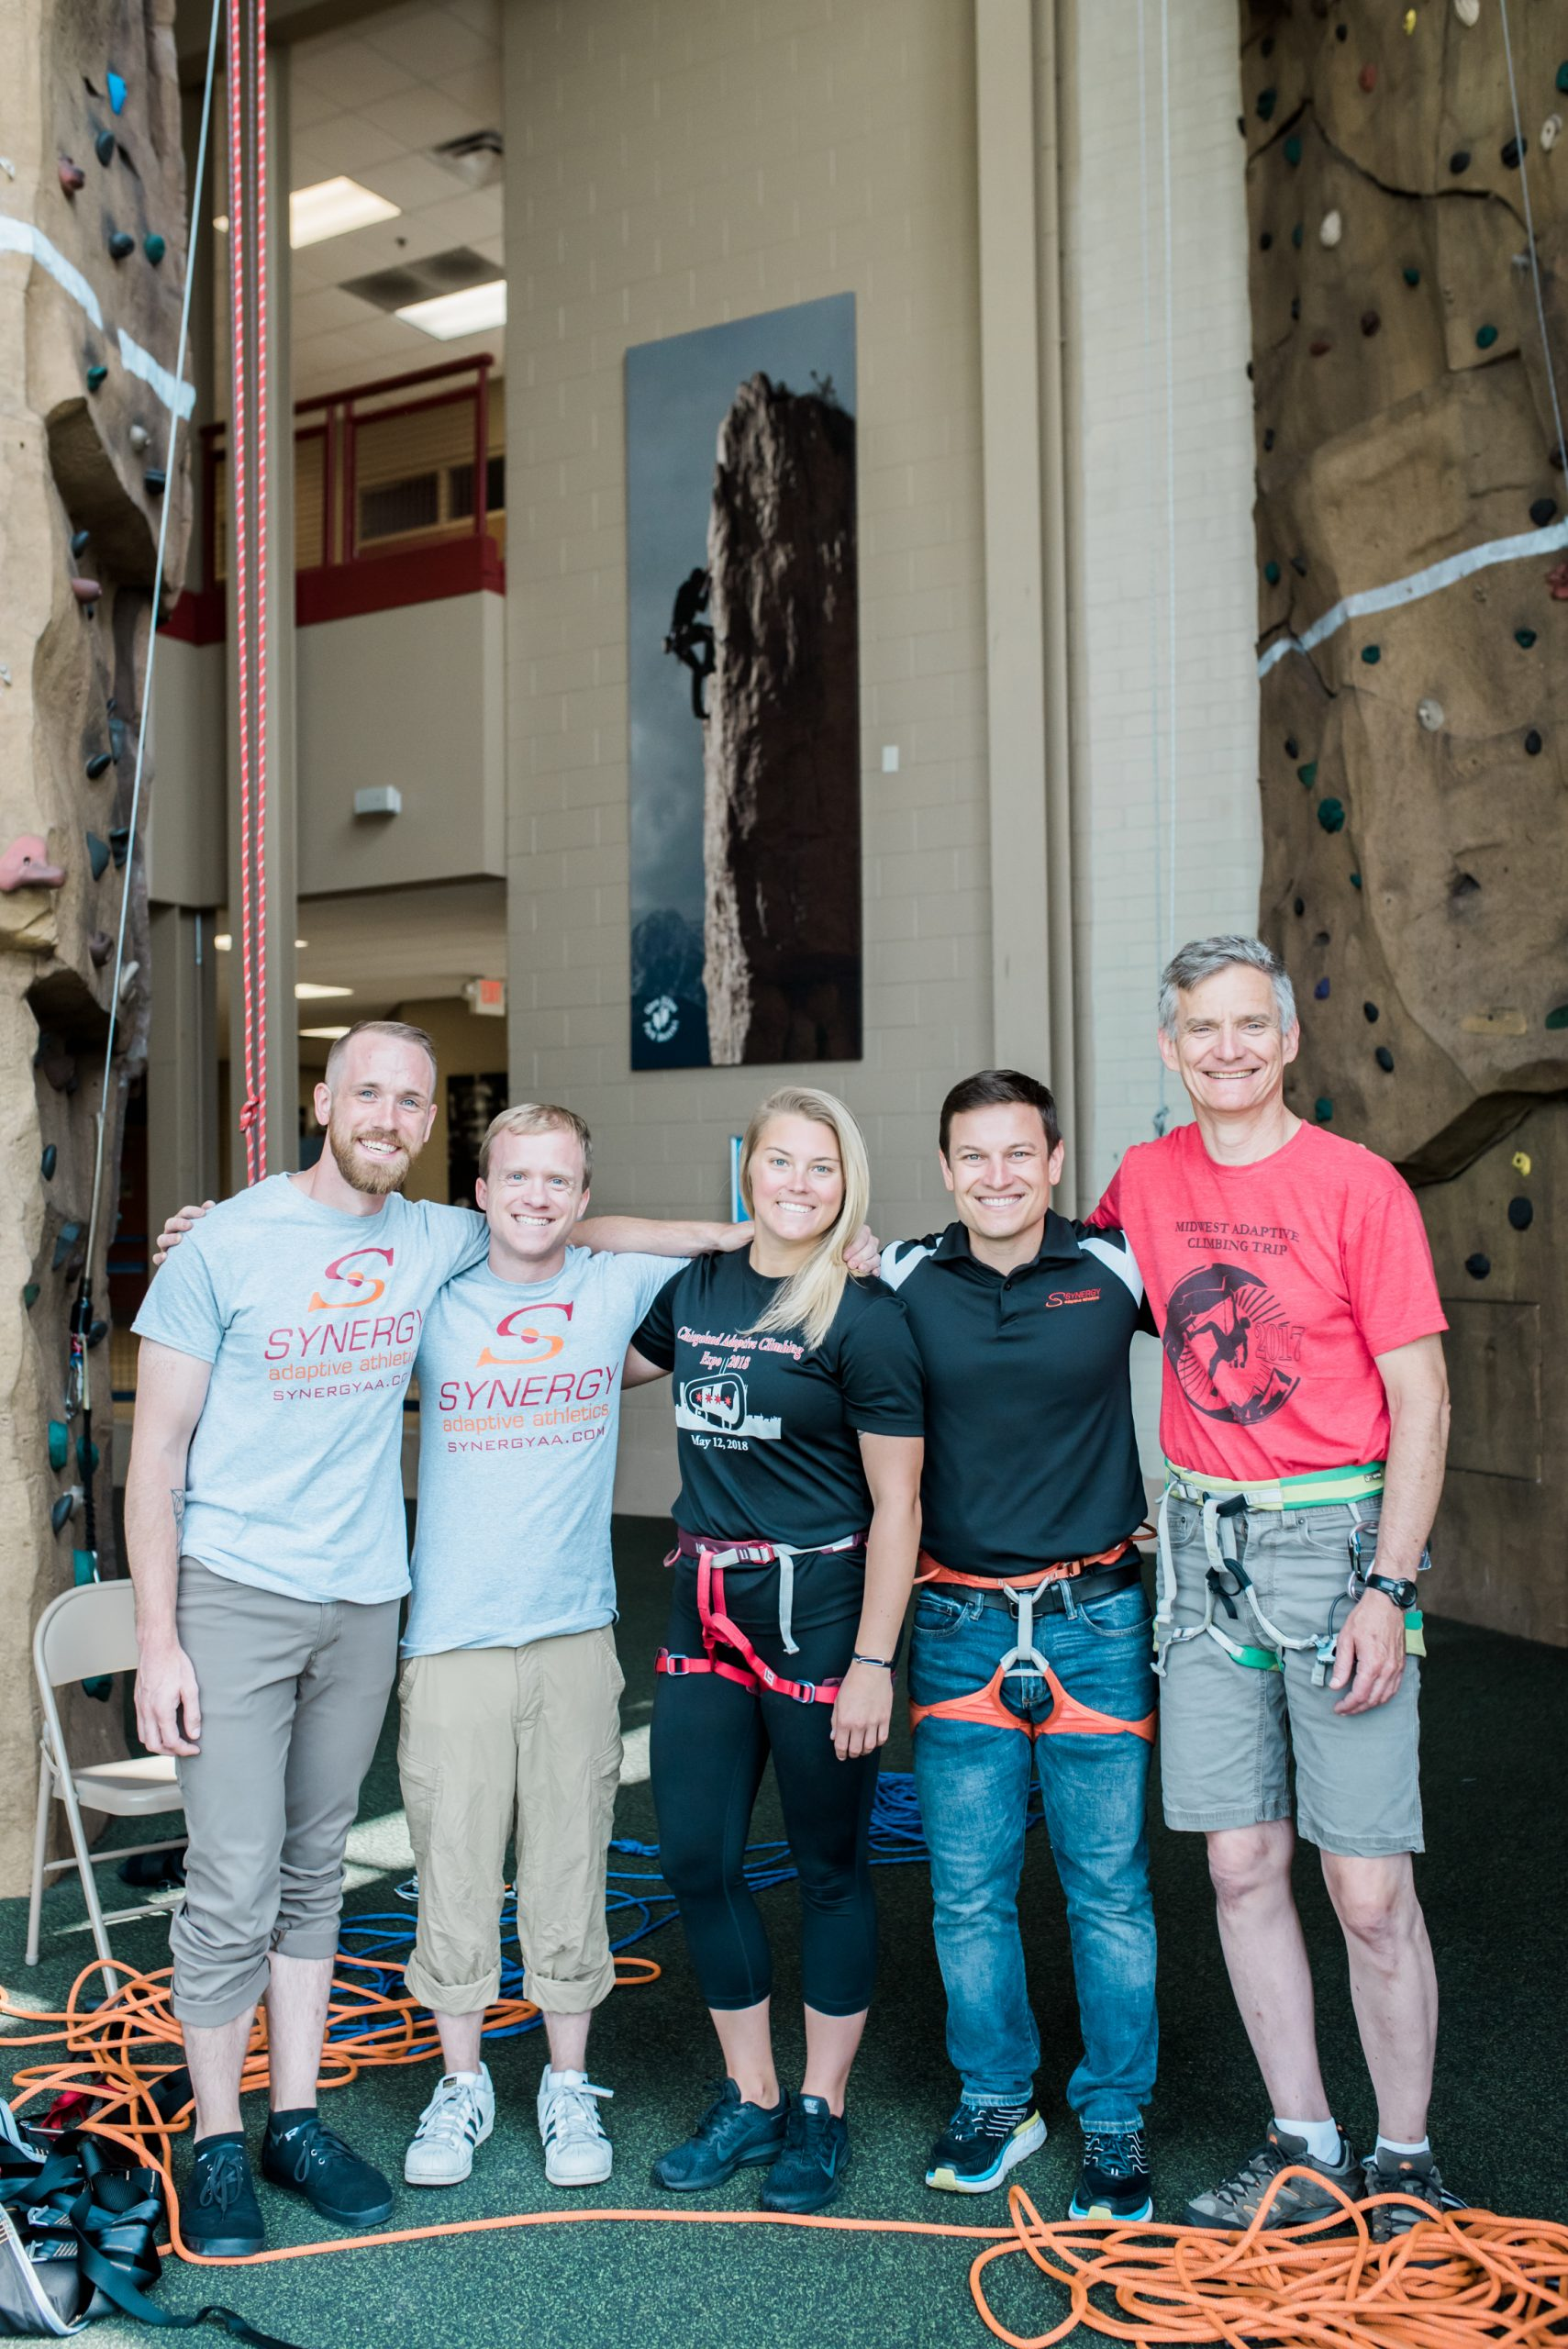 Five climbing staff at climbing wall. Links to volunteer and employment opportunities